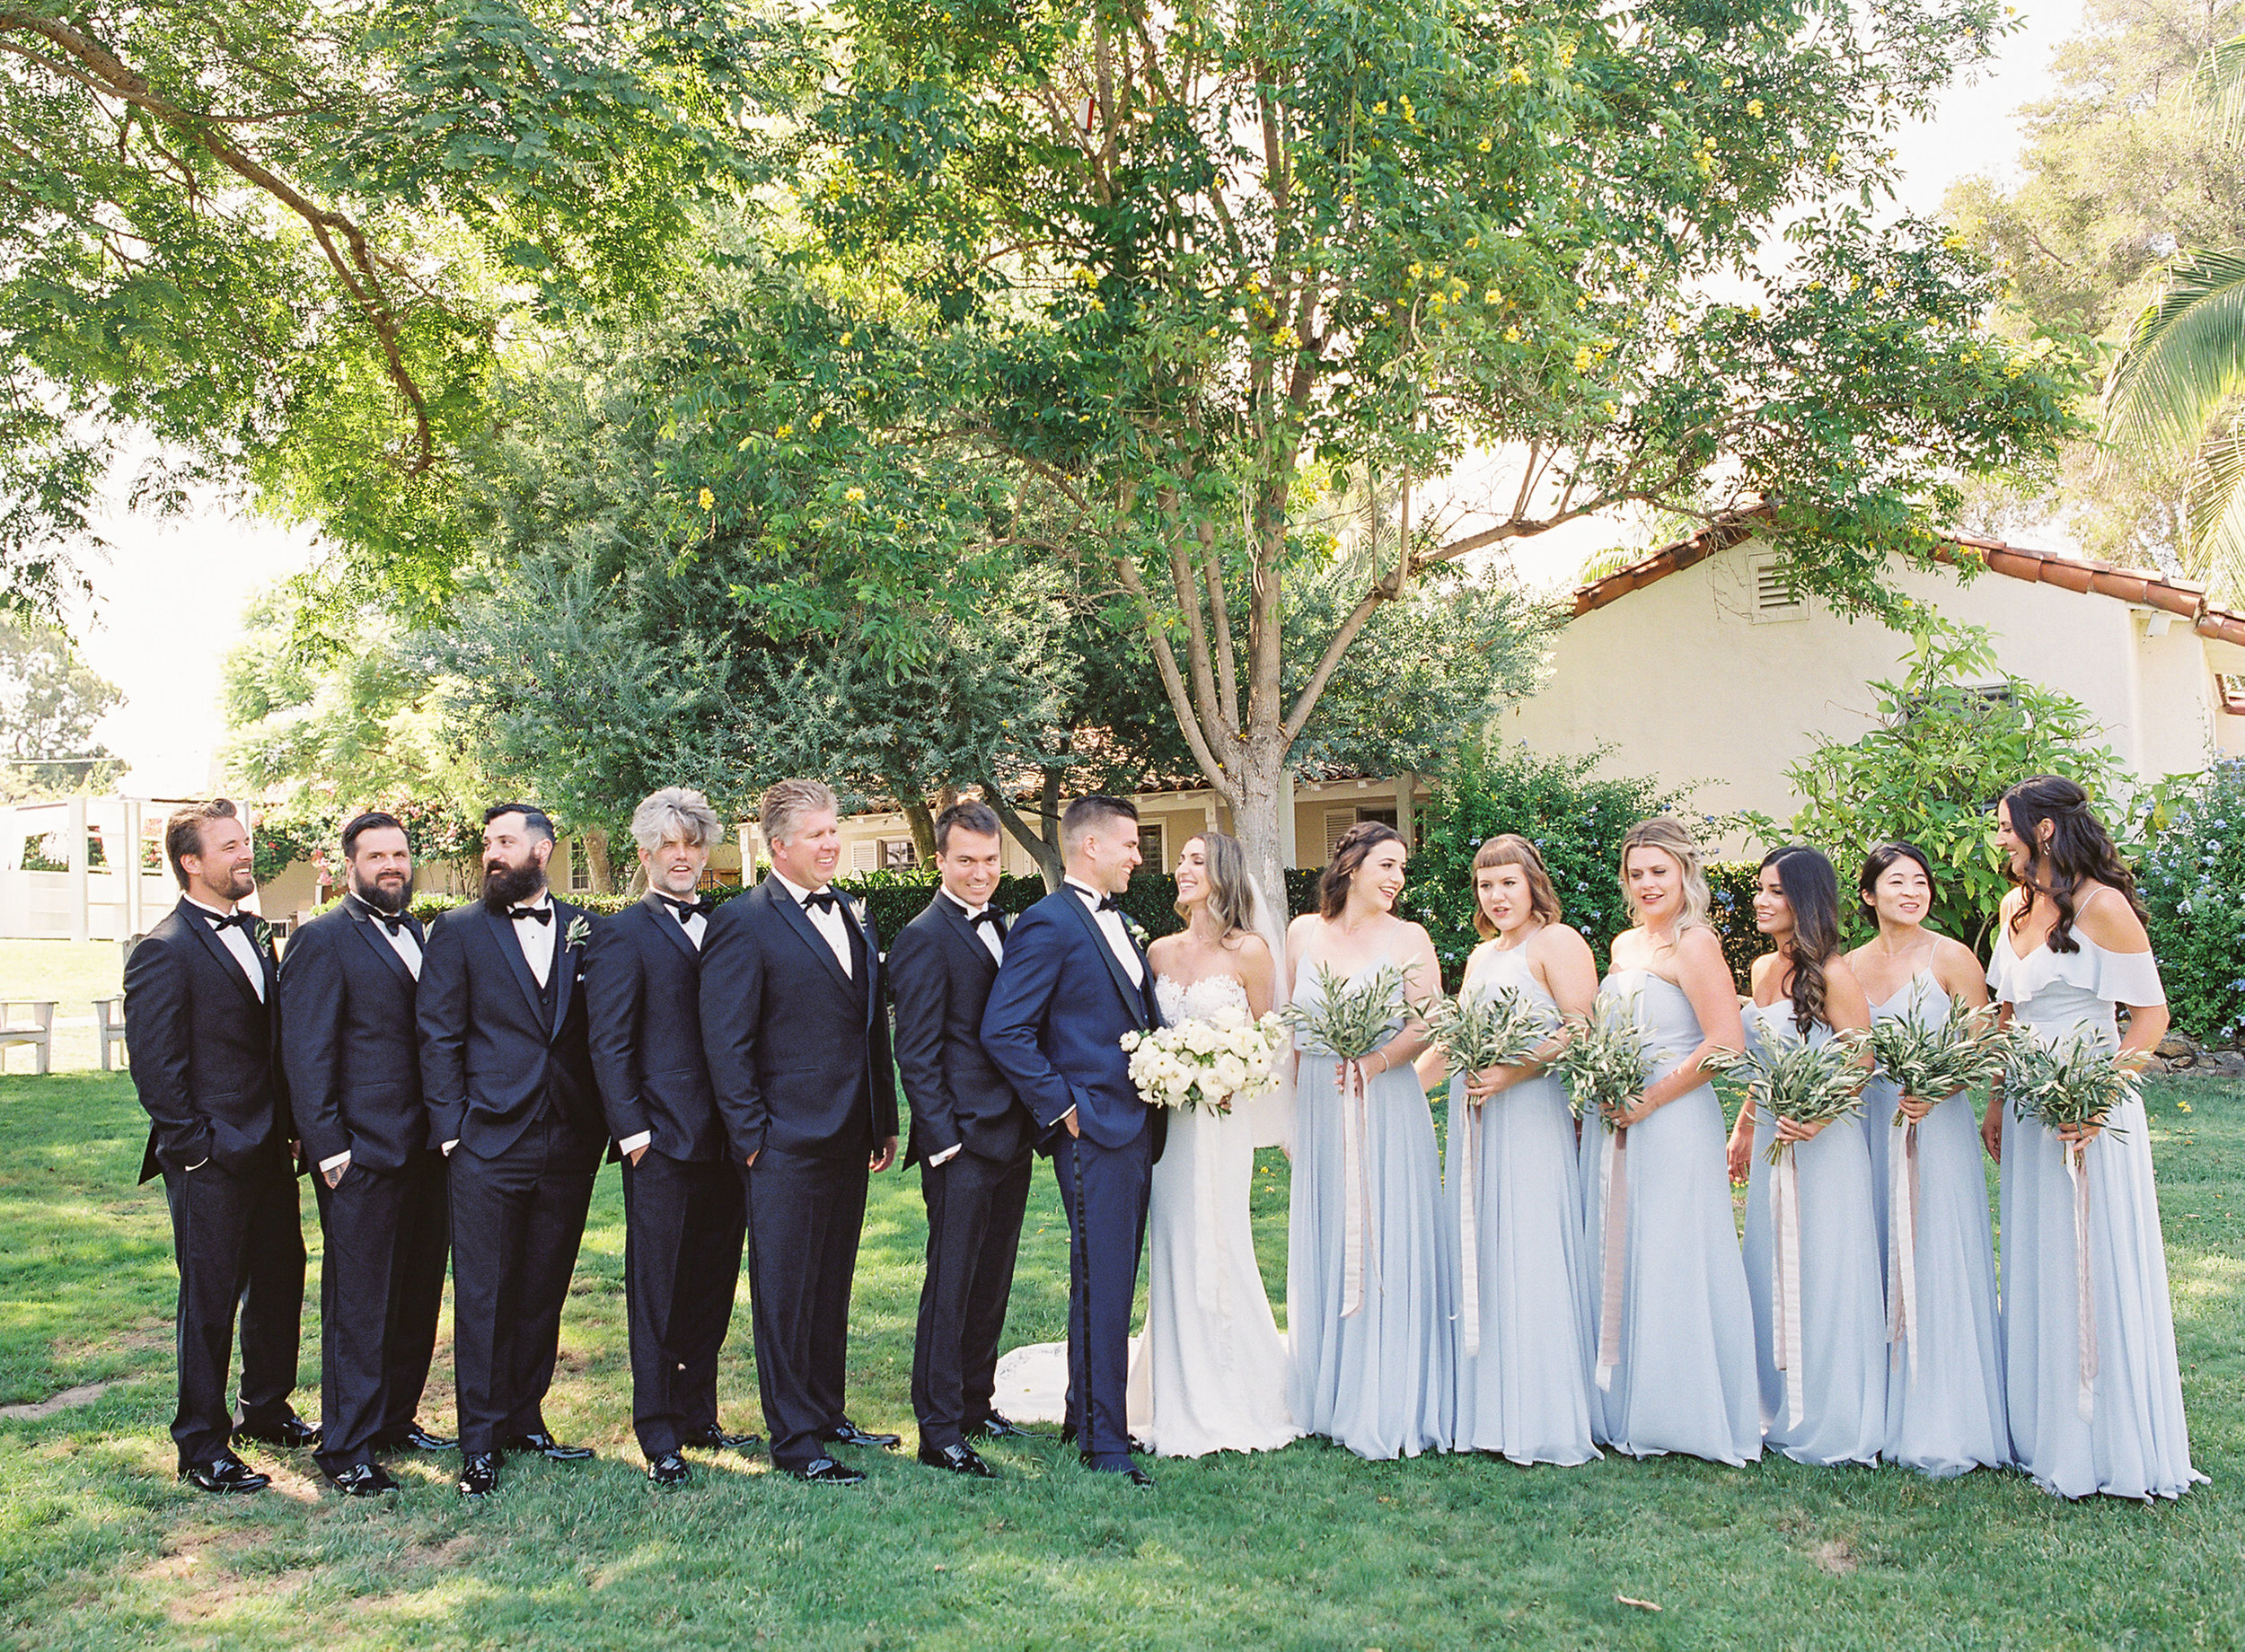 Inn-at-Rancho-Santa-Fe-Wedding-287.jpg